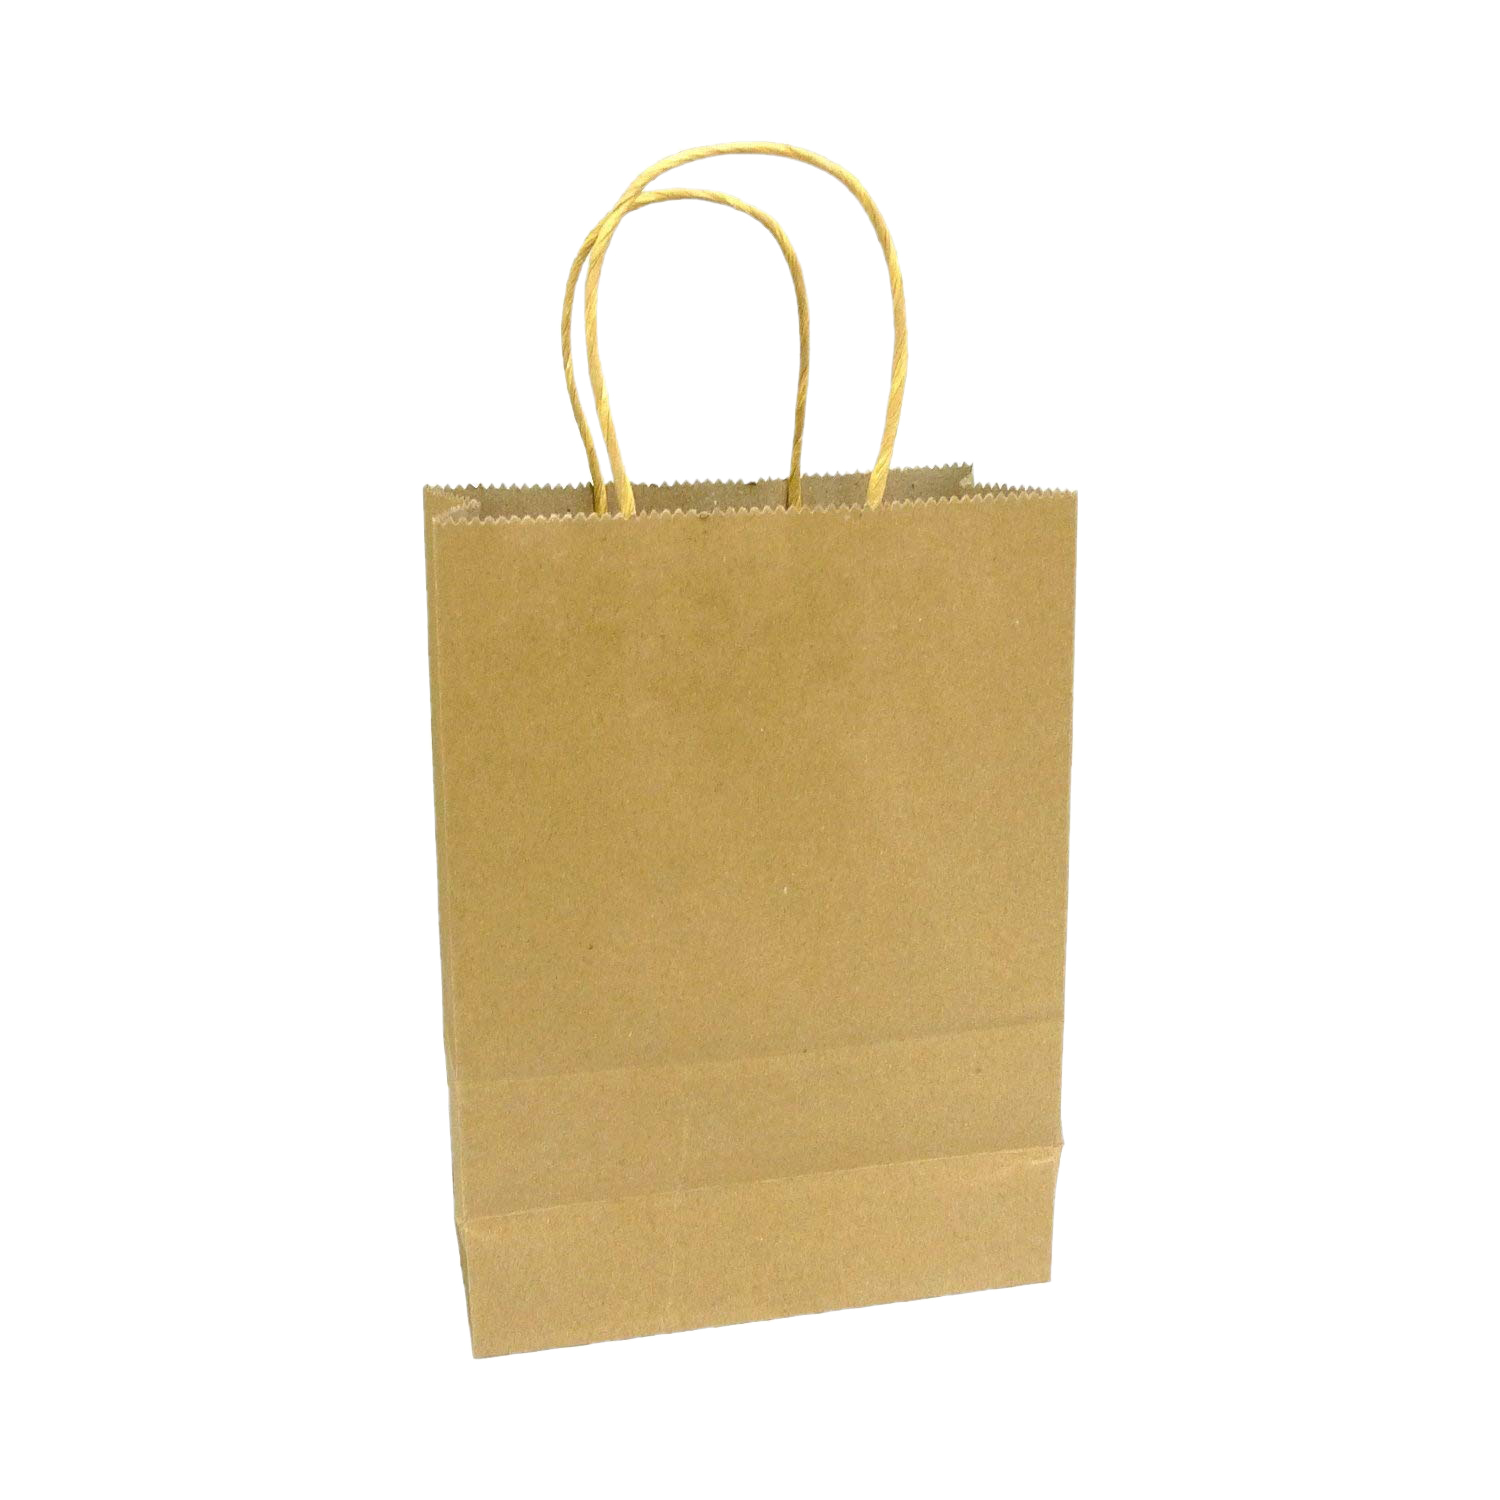 20 X Brown Paper Bags with Handles - Party and Birthday Gift A Handy Bag( 15cm x 21cm x 8cm)20 X Brown Paper Bags with Handles - Party and Birthday Gift A Handy Bag( 15cm x 21cm x 8cm)